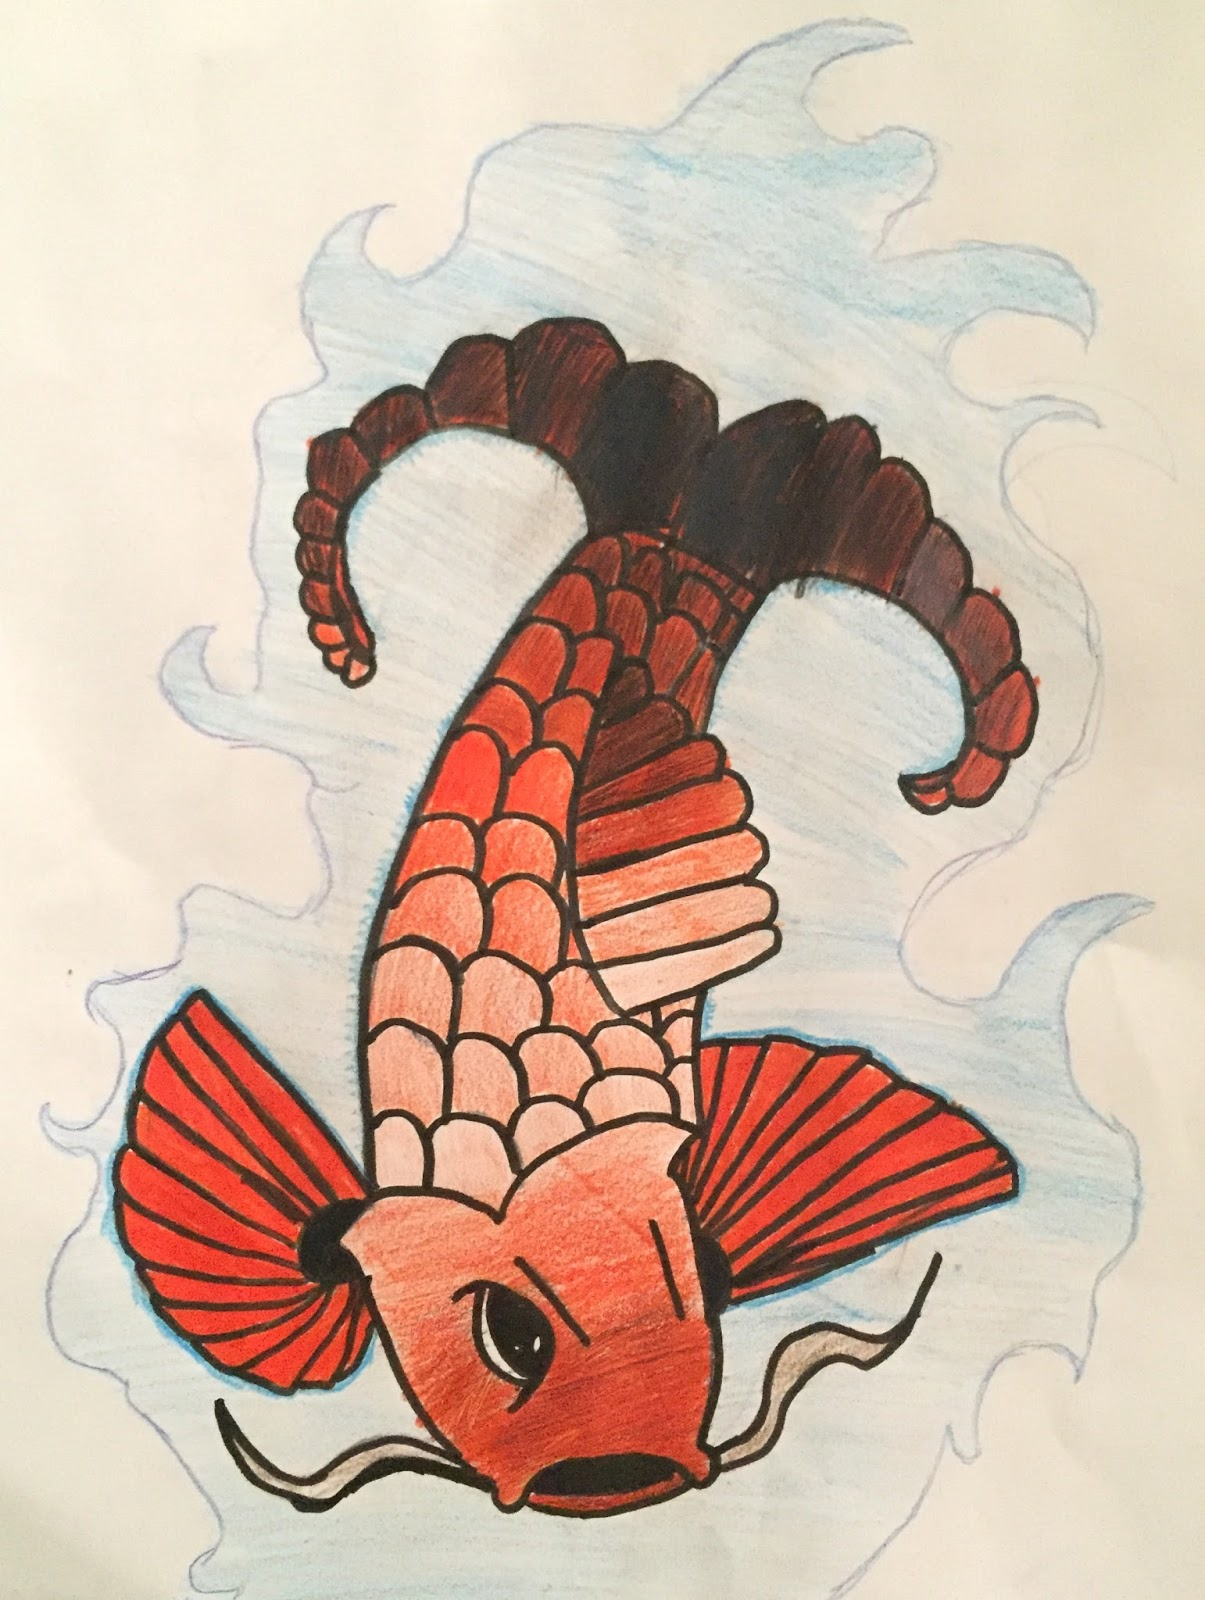 Ms. Kober | Archway Trivium Art: 5th GRADE JAPANESE KOI FISH DRAWINGS